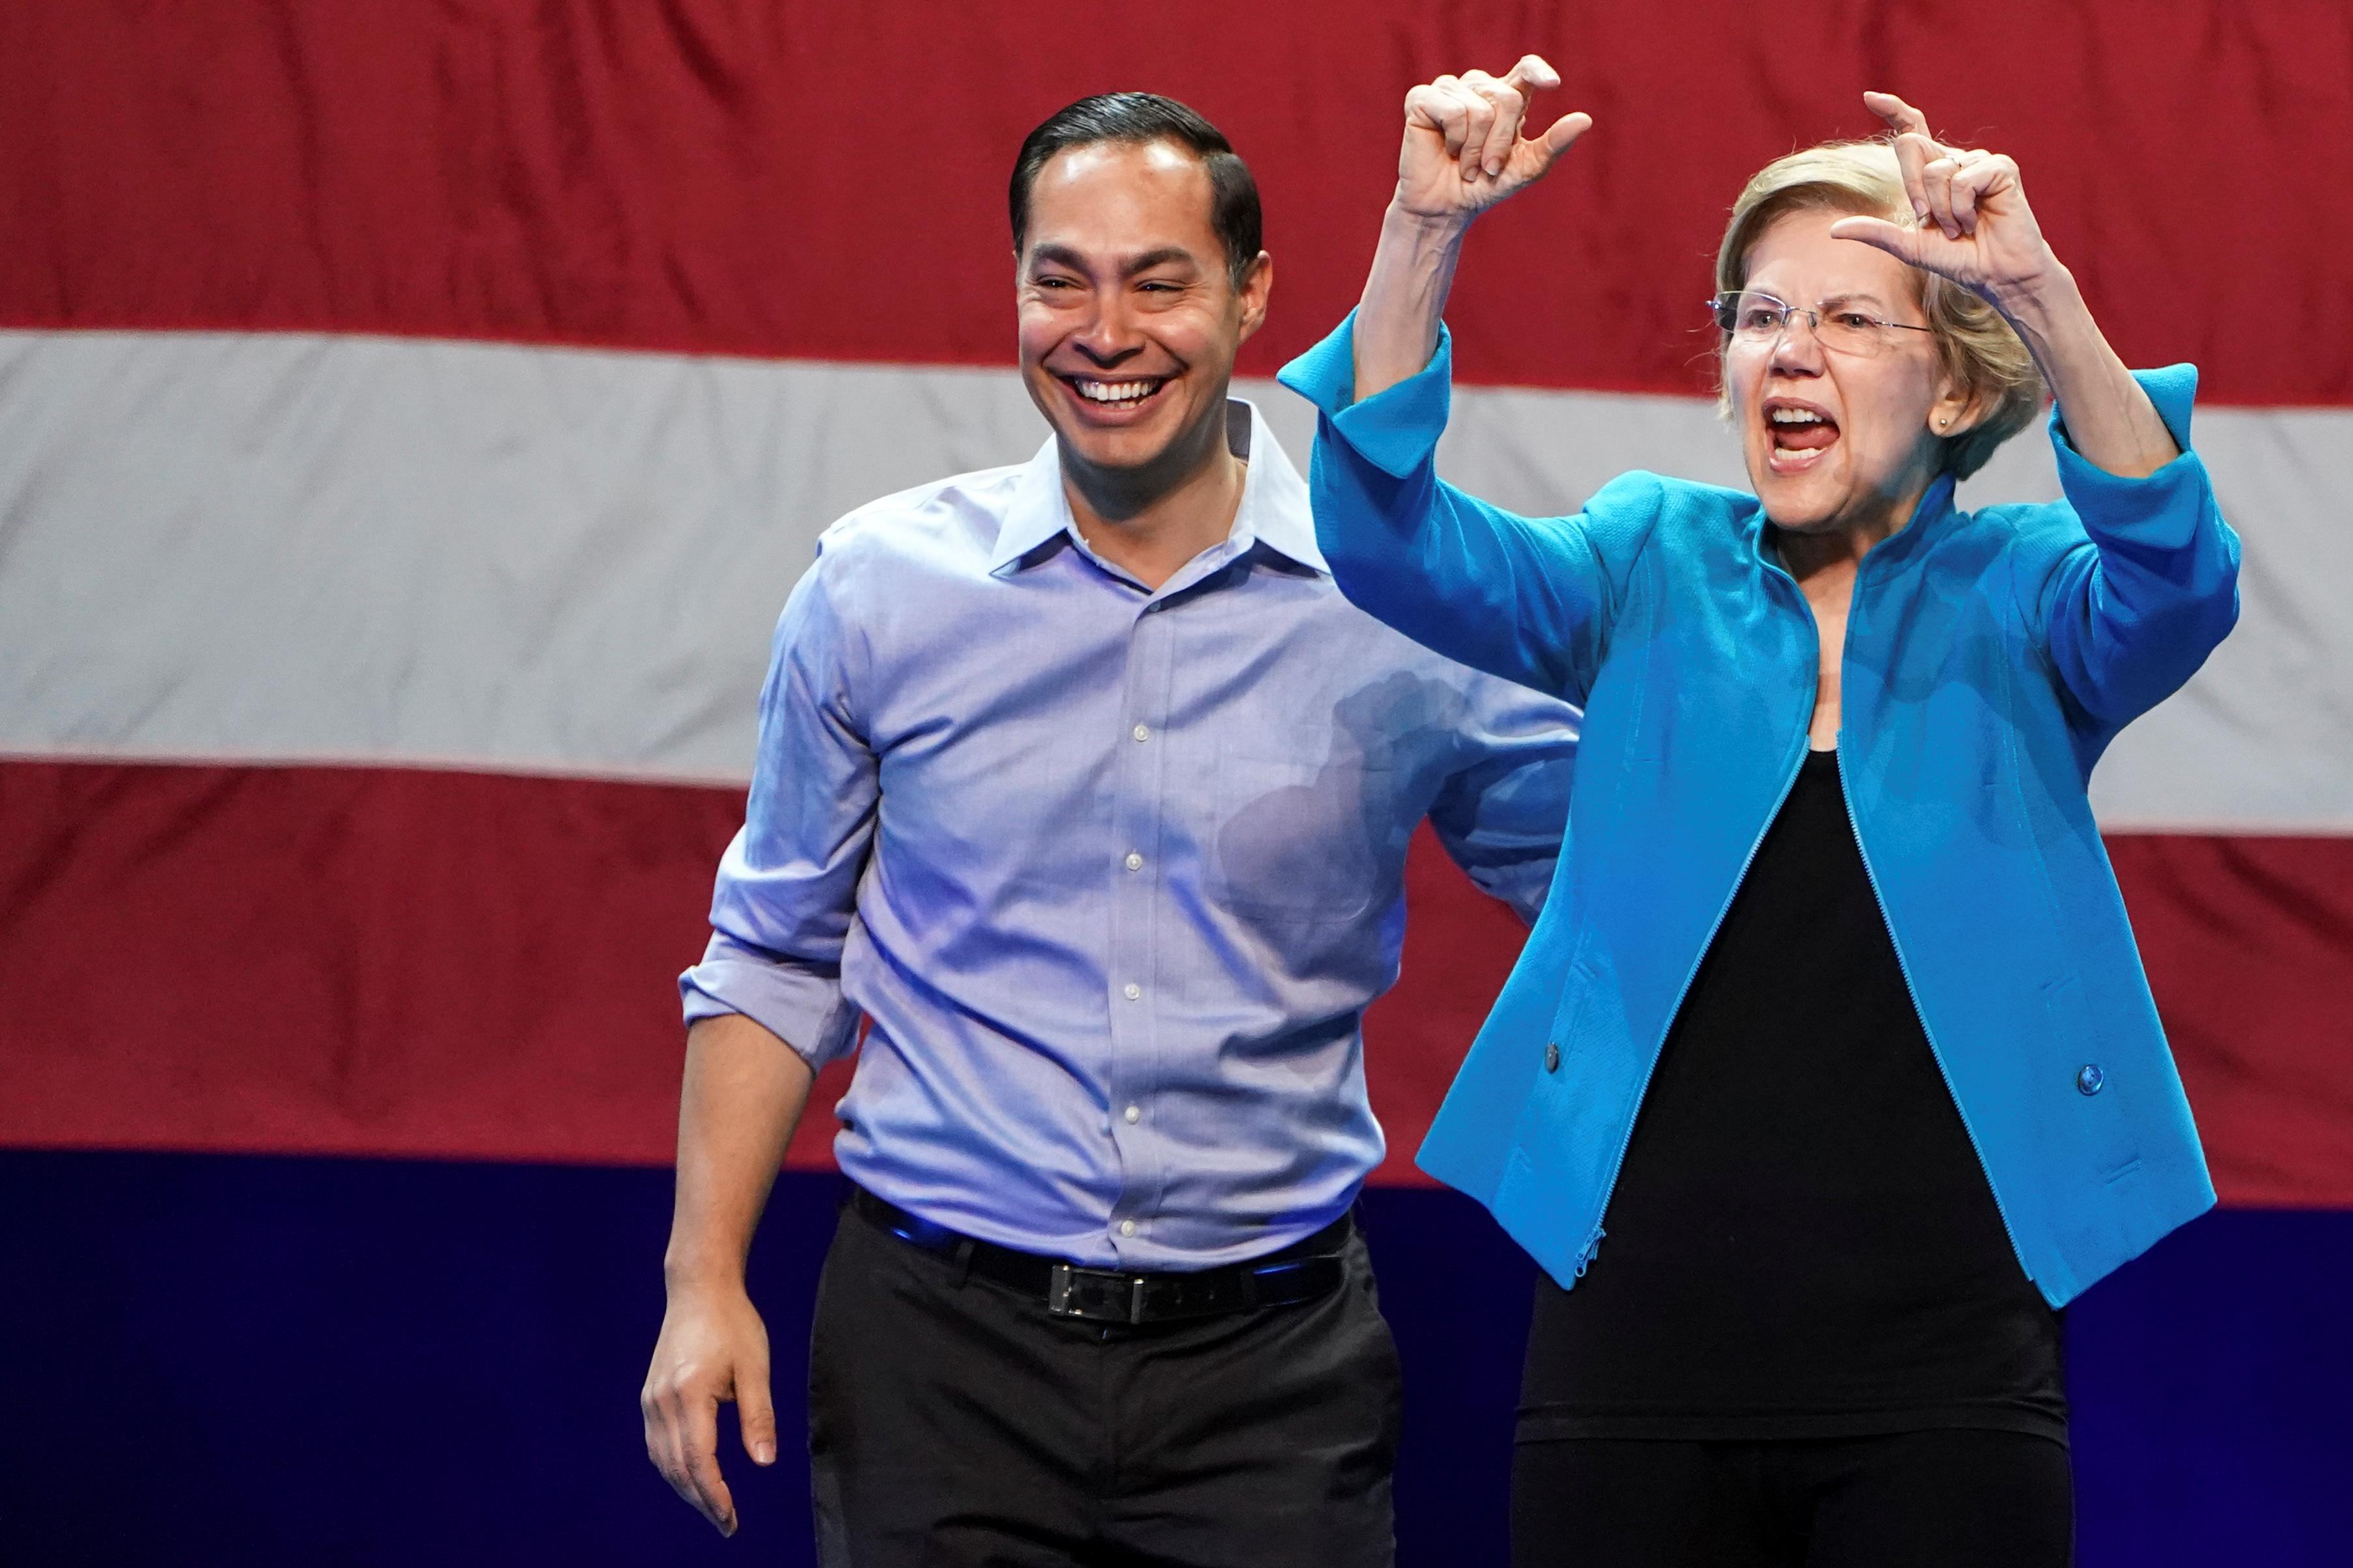 Elizabeth Warren on Bloomberg 2020: 'I guess he figured it was cheaper than paying a $0.02 wealth tax'